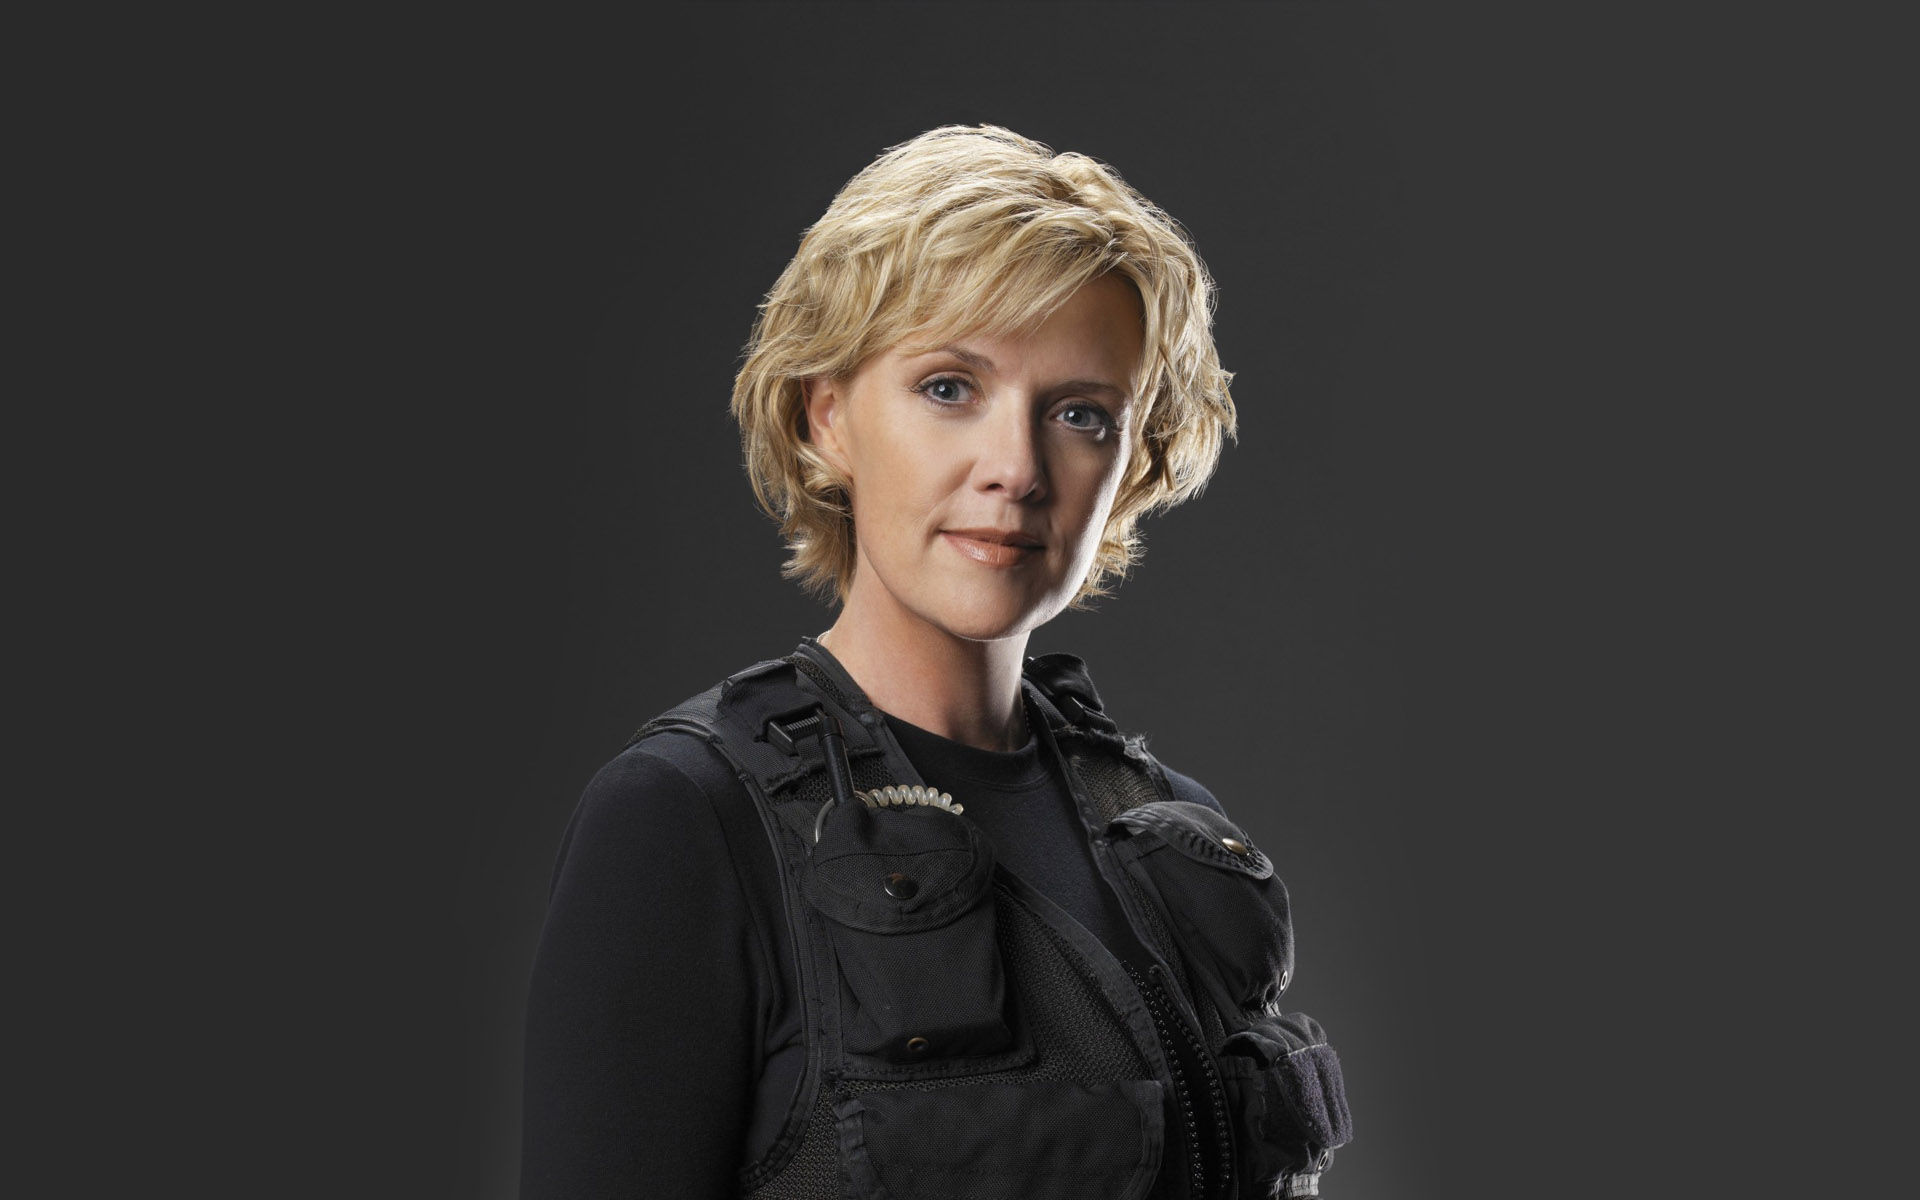 Mobile Wallpapers Hd Animated Wallpapers Sur Amanda Tapping